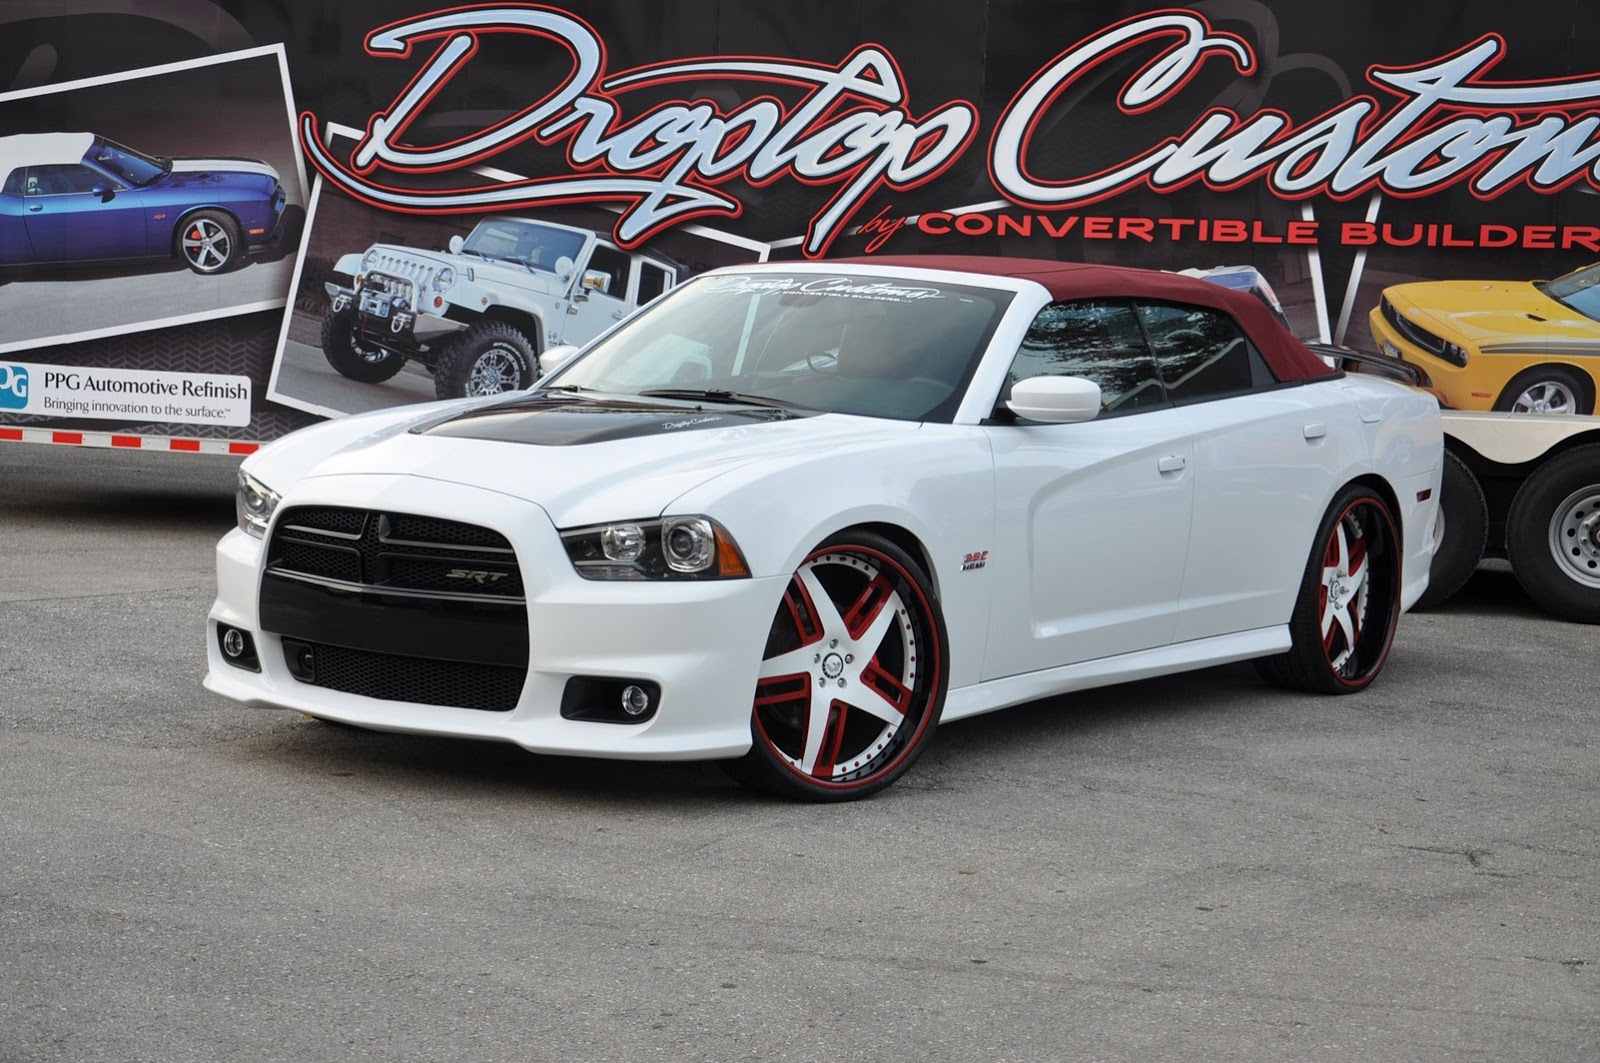 Drop Top Customs Chrysler 300 and Dodge Charger SRT8 Photo ...